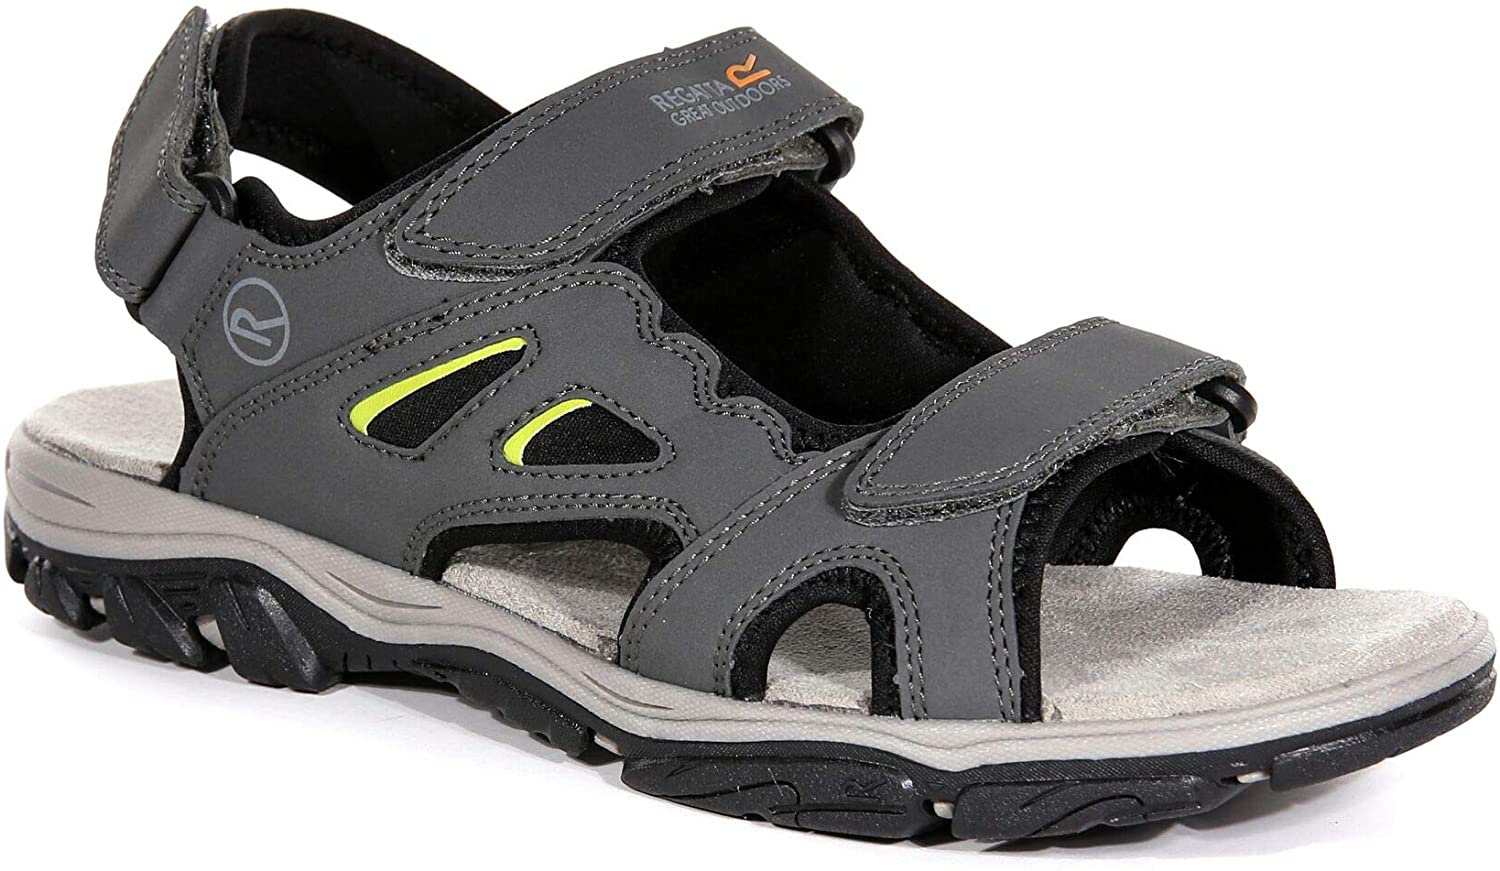 Regatta Men's Open Toe Sandals